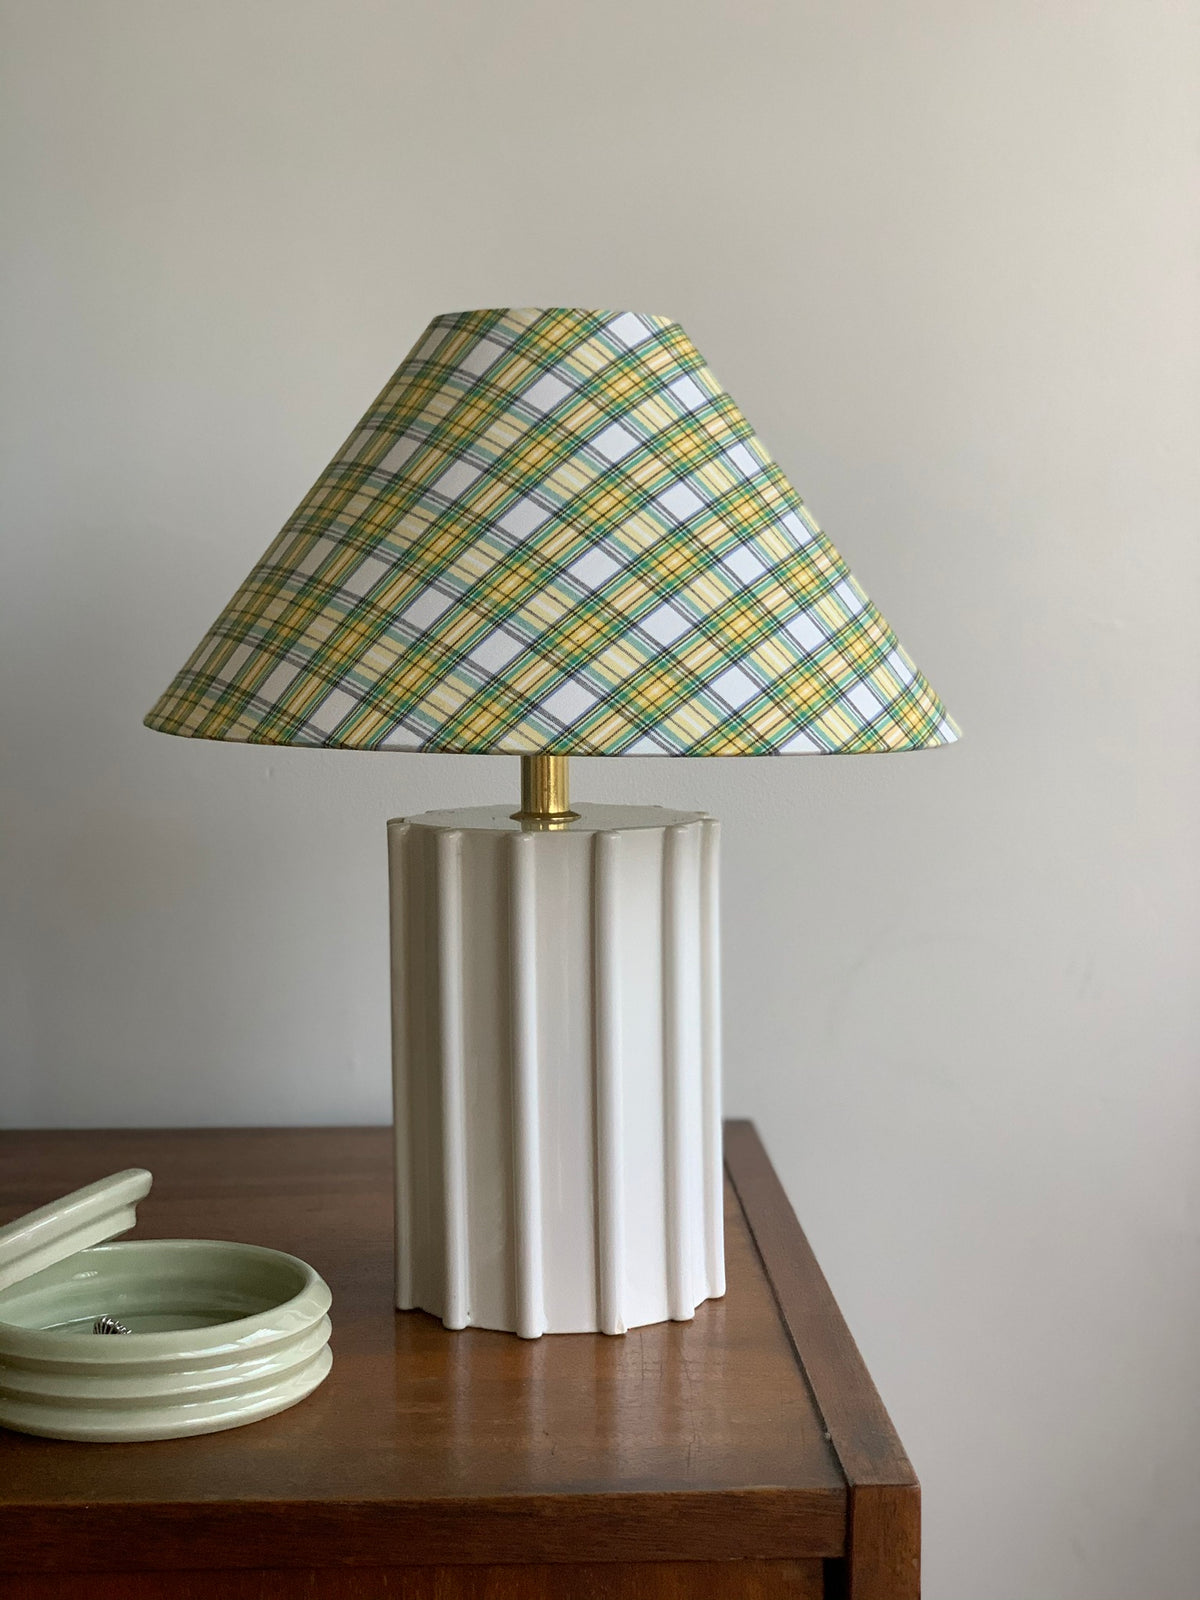 Ribbed ceramic lamp with plaid shade